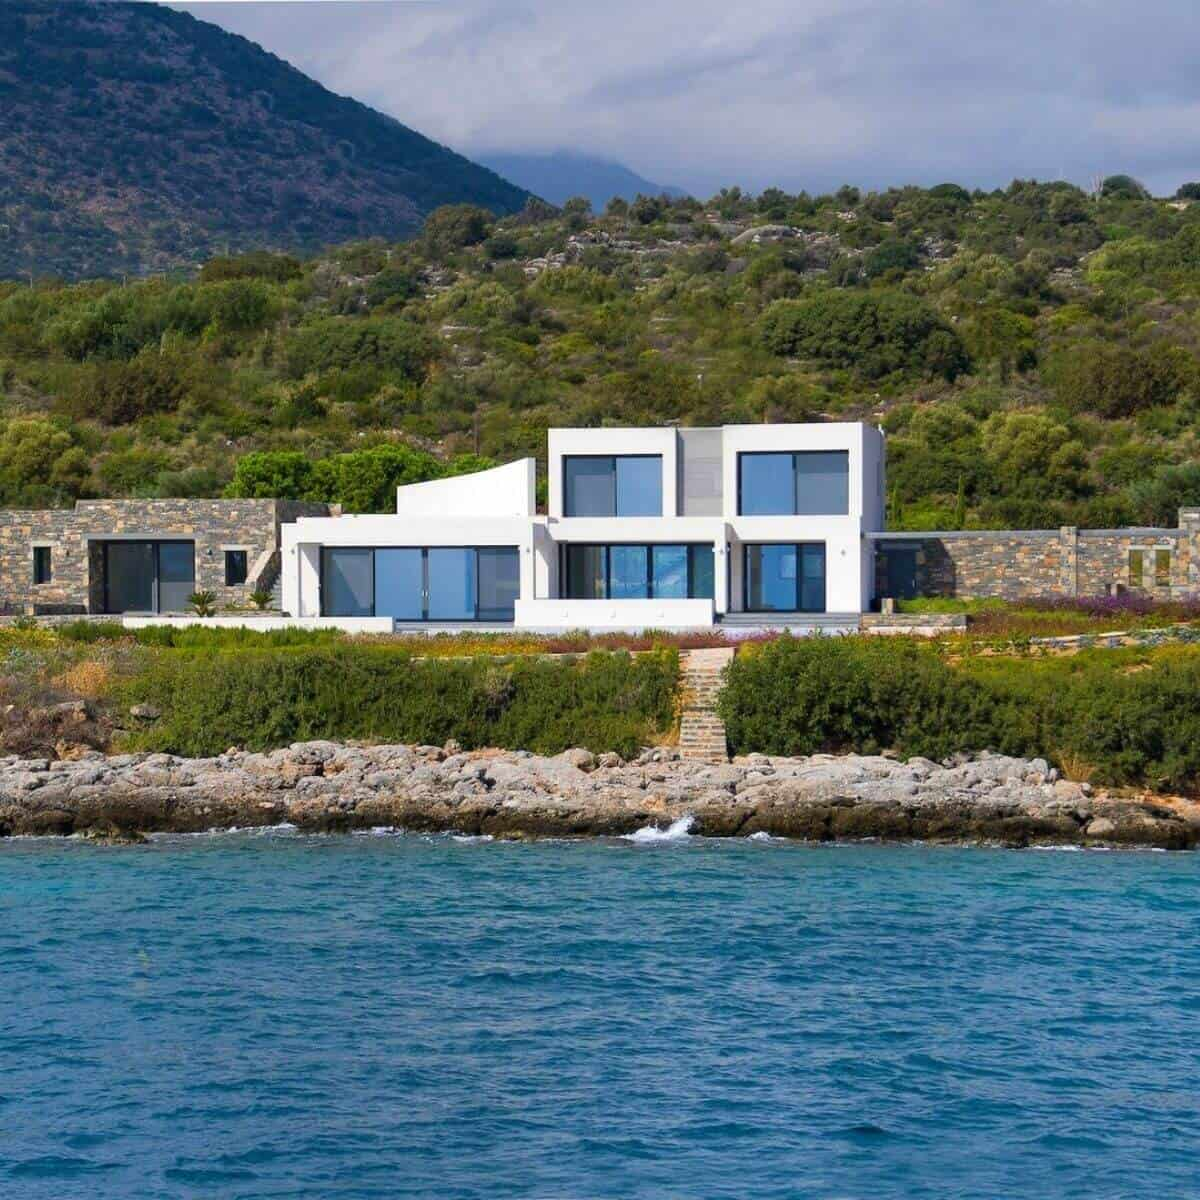 White and stone modern mansion next to the water and in front of hills and mountains.